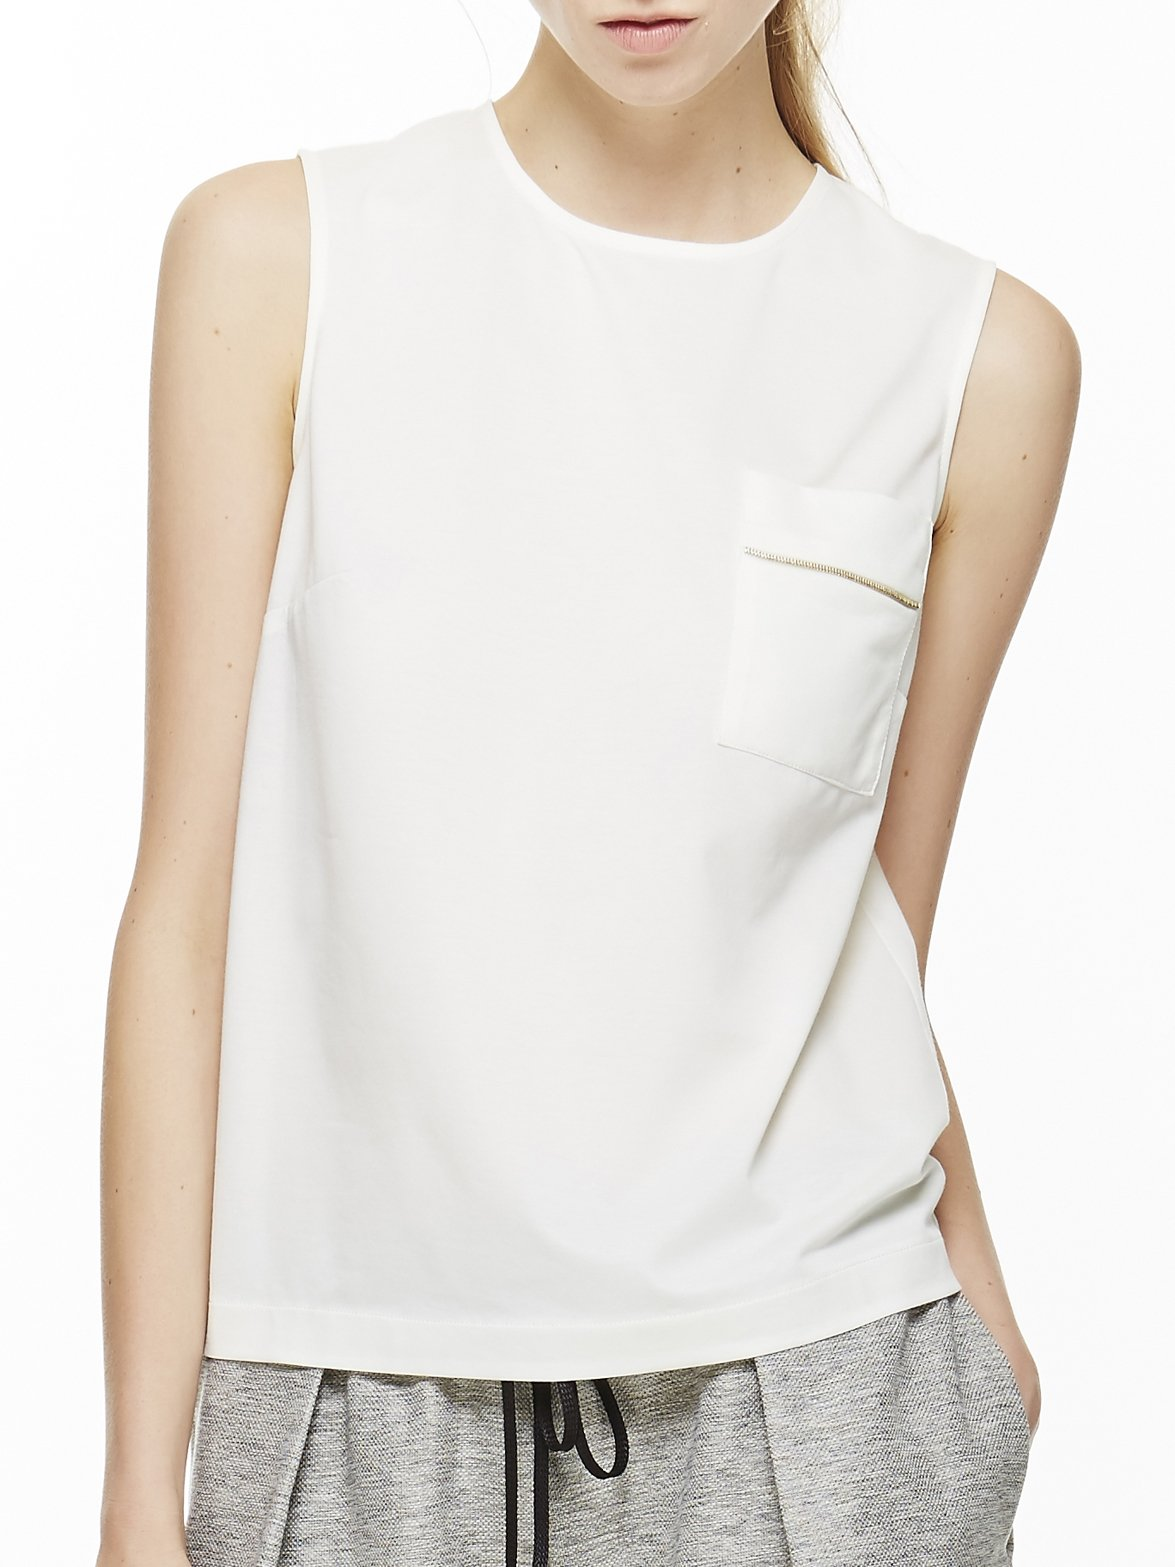 Women's Knit Tank with Back Zip Large Off-white by 4 corners of a circle